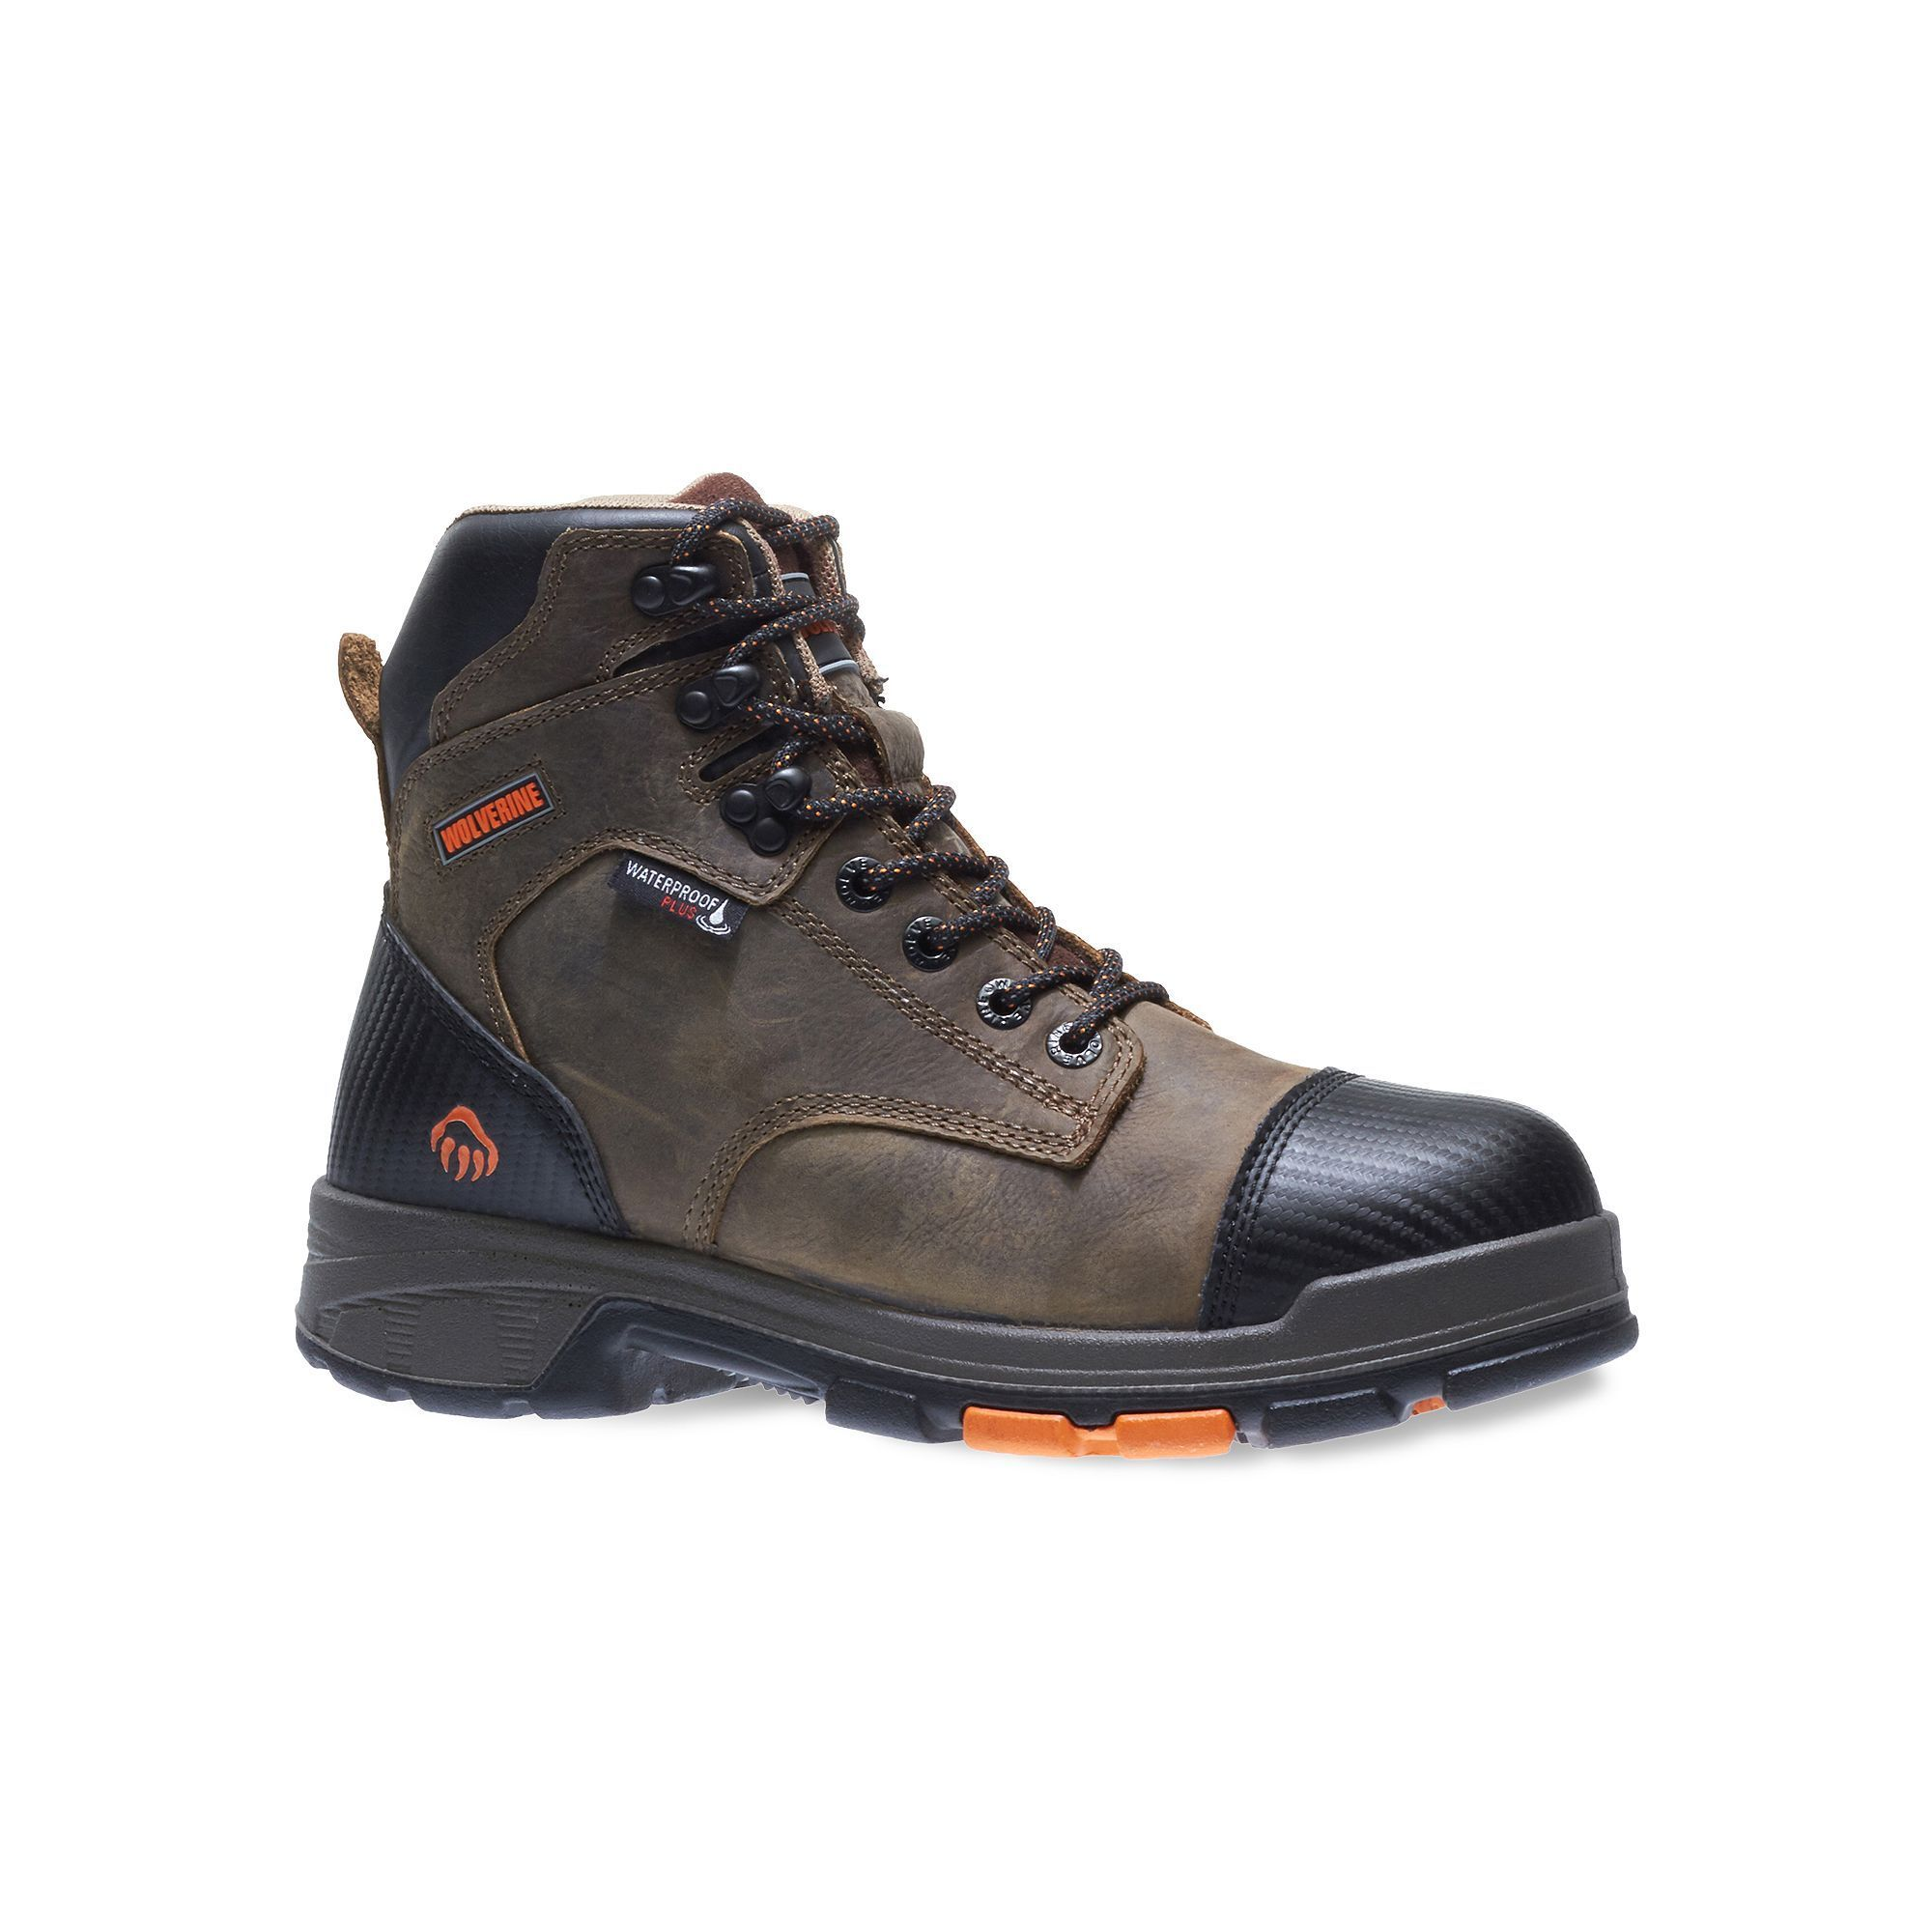 753b244d3af Wolverine Blade LX Men's Waterproof Work Boots | Products | Boots ...